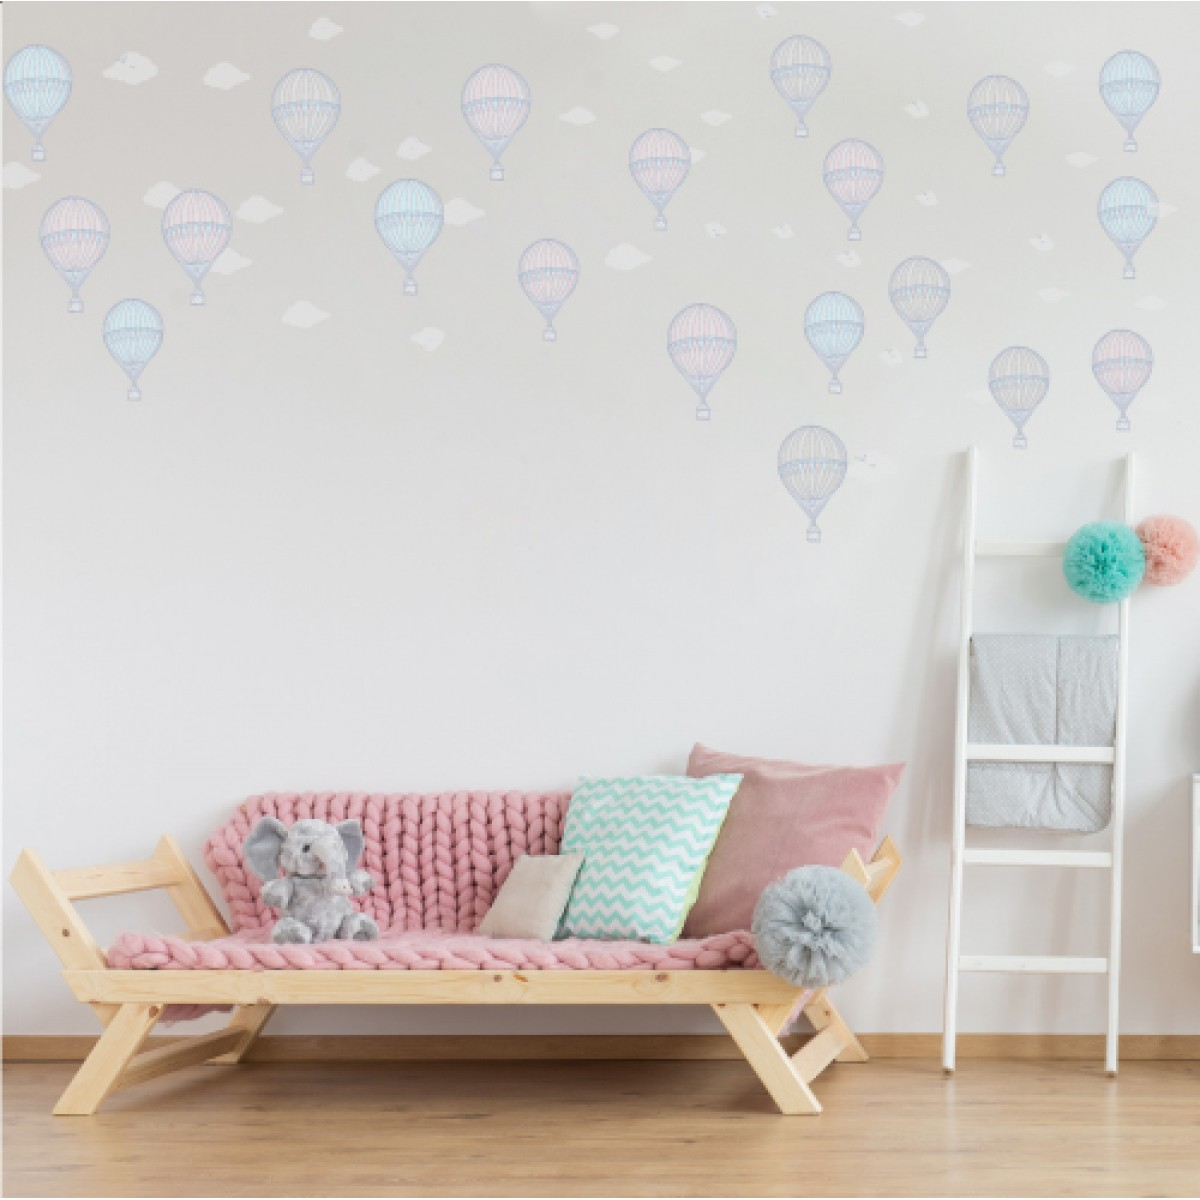 Hot Air Balloon Removeable Wall Decal Proudly Made In Nz